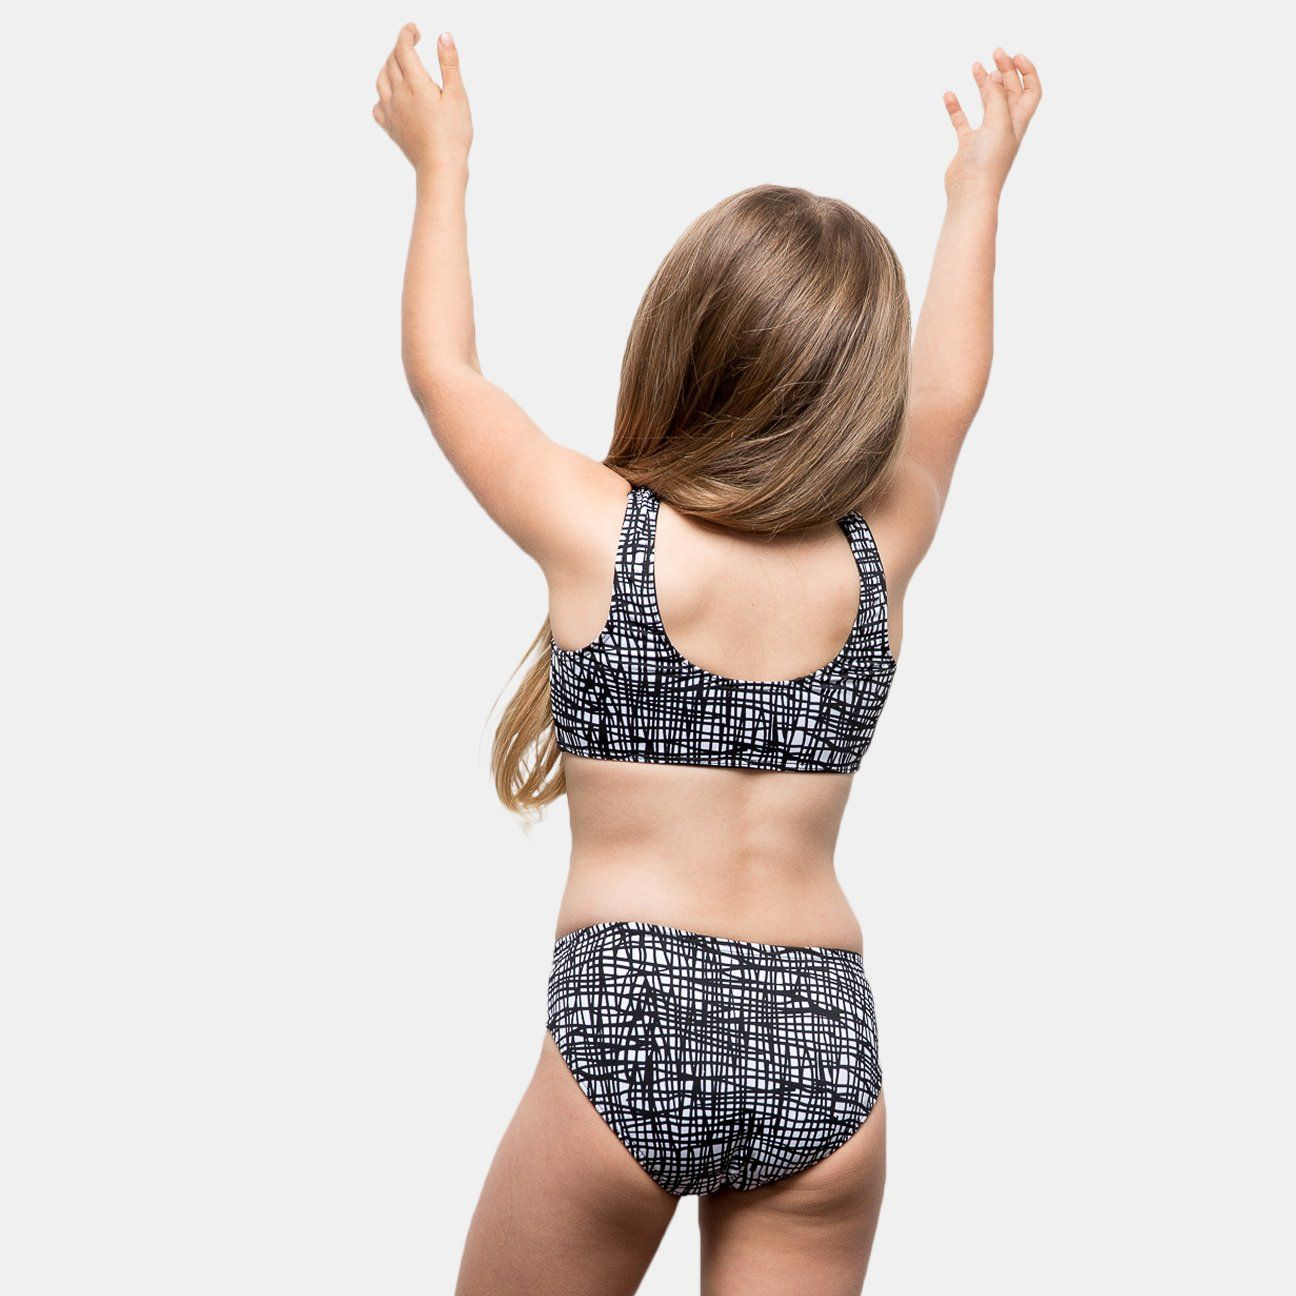 9c8189c0fd Girls bikini with our signature cami top and bottom by CURRENT. Two piece  set Fully lined Suggested fit: 5-12 years old Model wearing size 5/6 Made  in Los ...